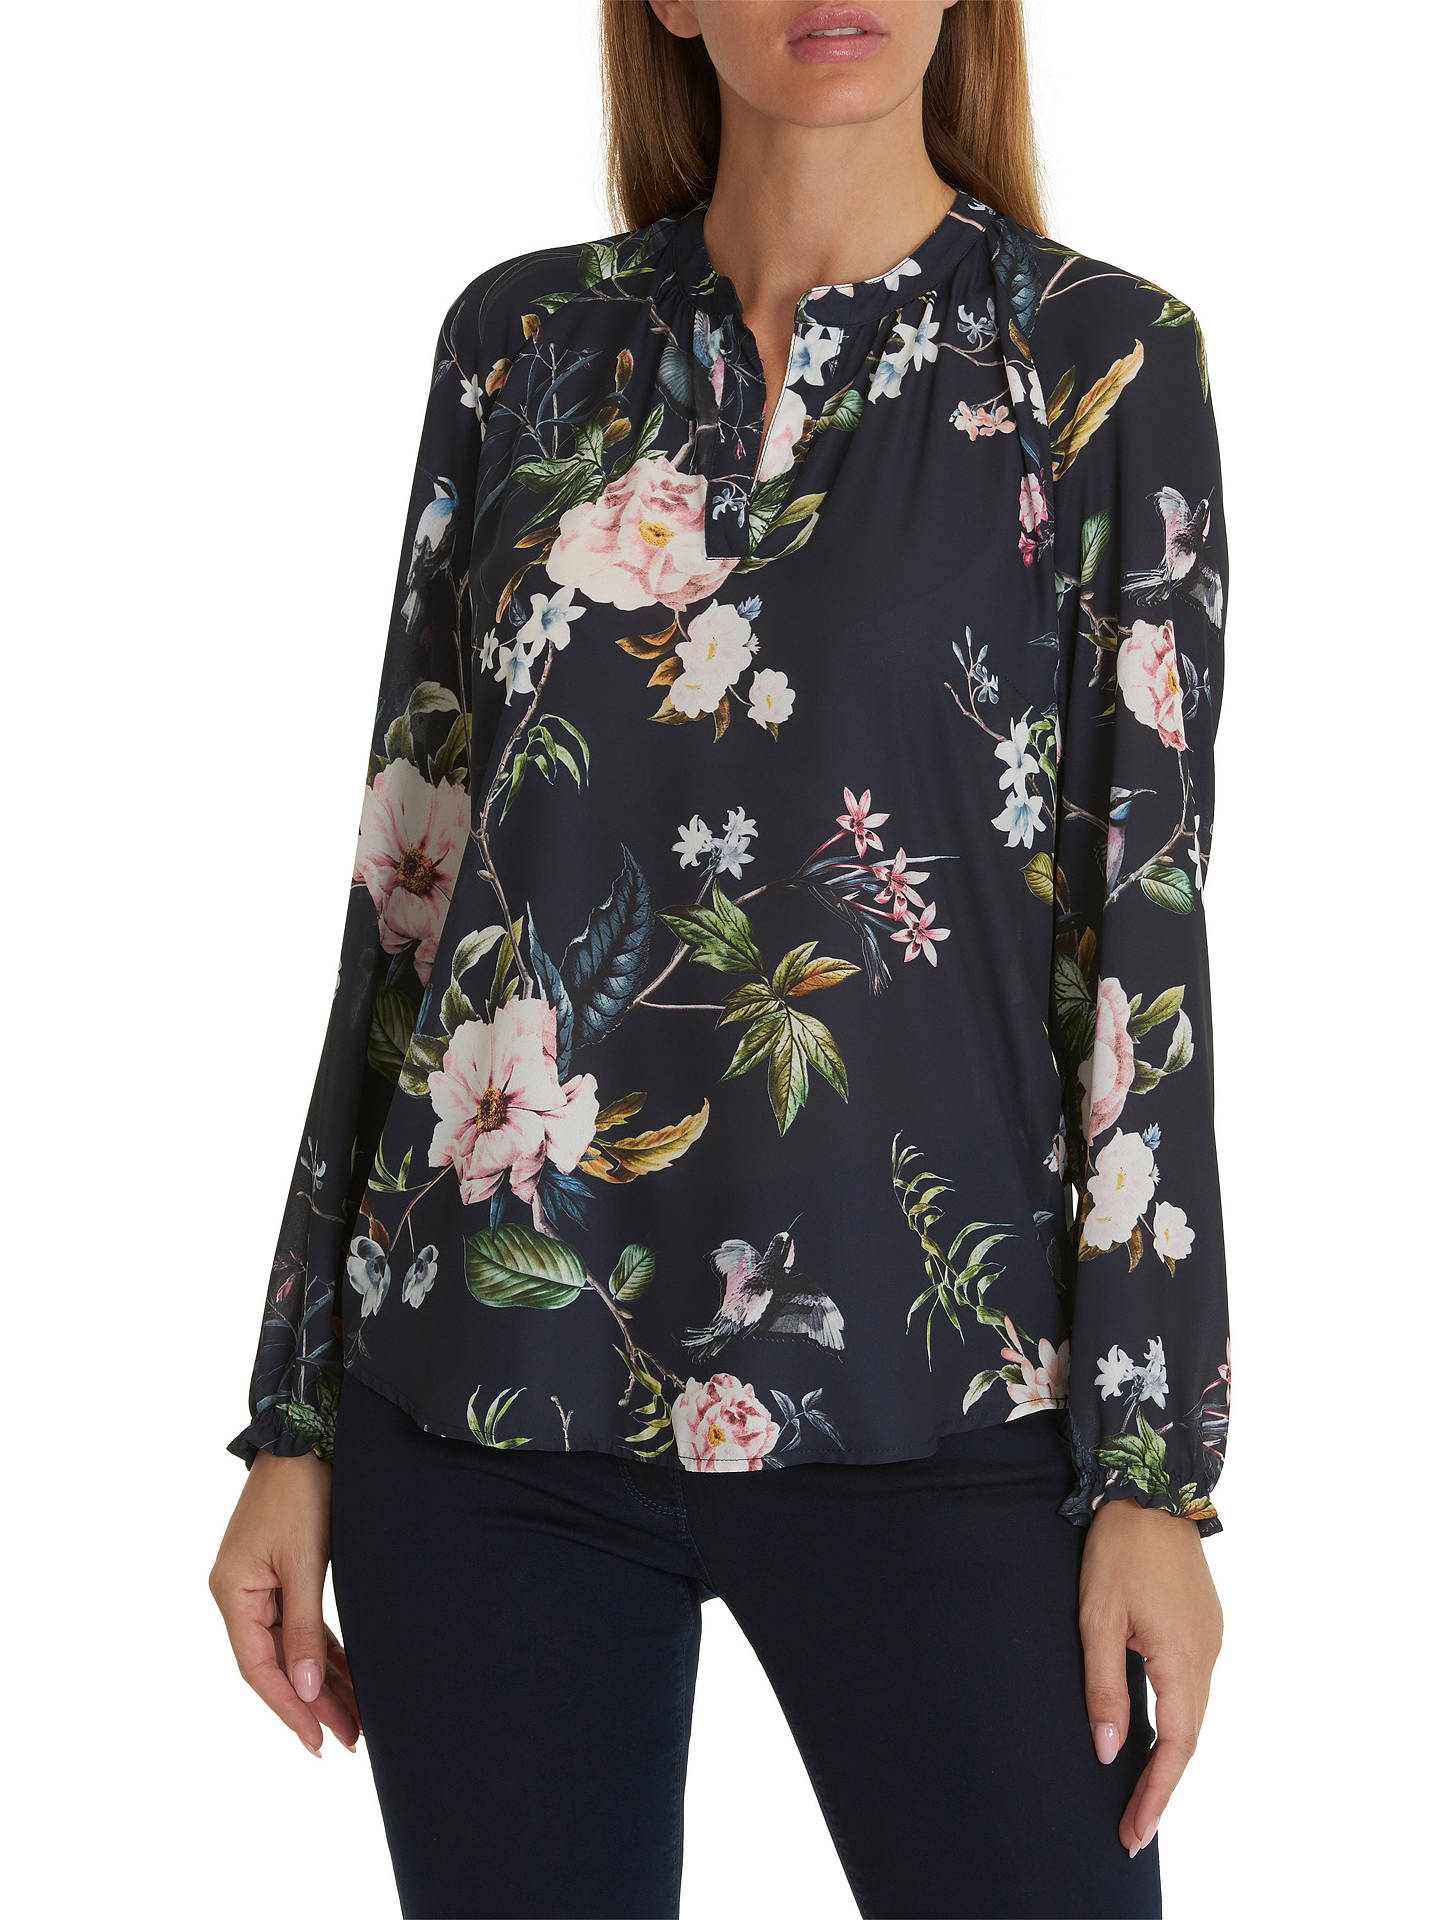 BuyBetty Barclay Floral Print Blouse, Dark Blue Rose, 10 Online at  johnlewis. c48f81e2cc